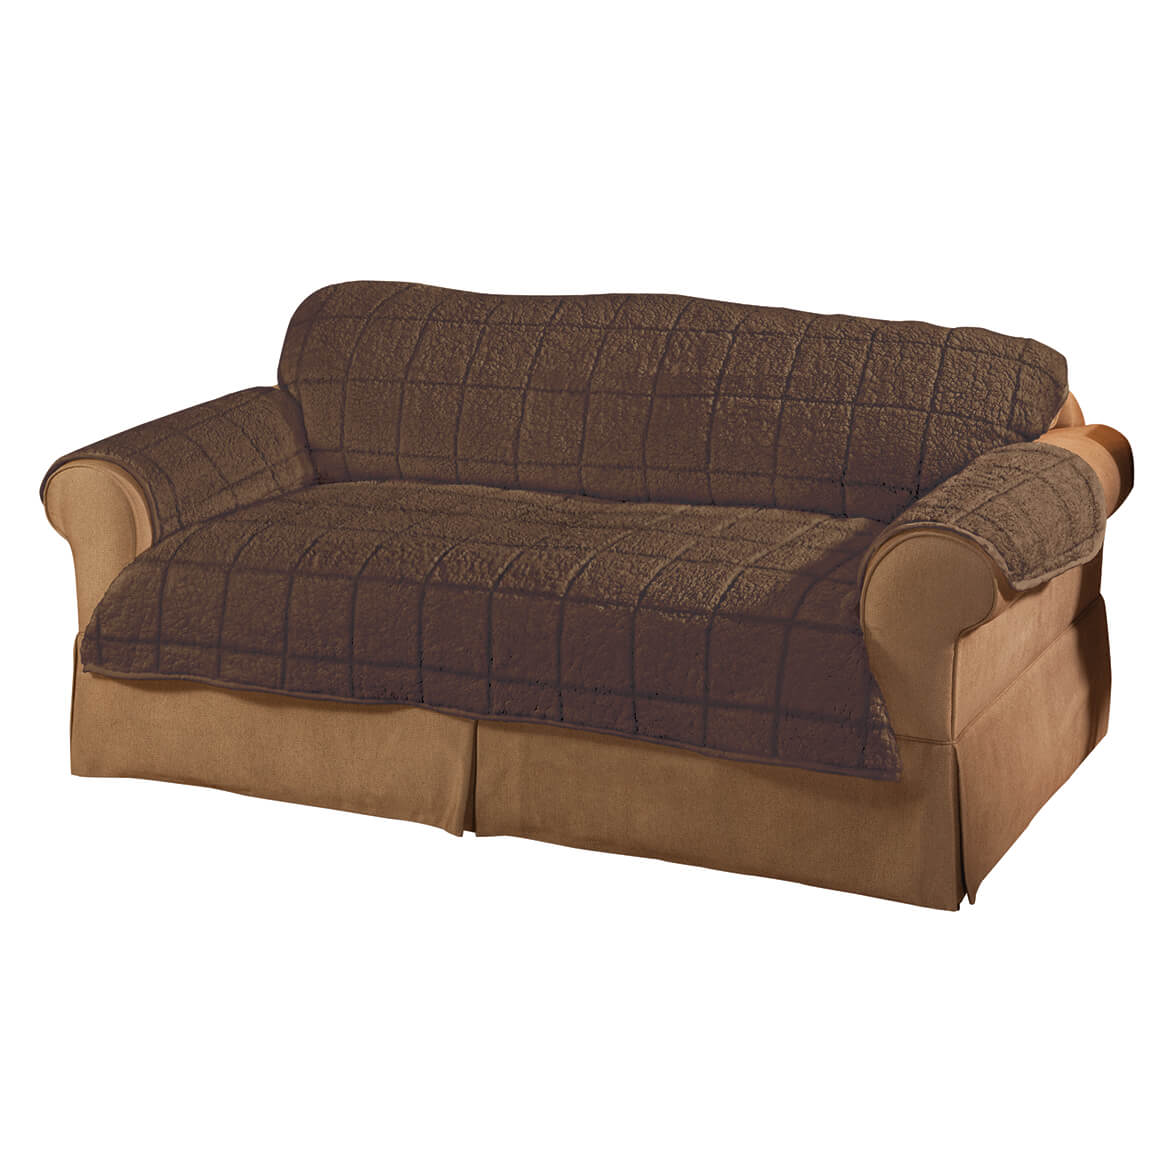 """Miles Kimball Parker Sherpa Sofa Couch Cover by OakRidge, Mocha Brown Water Resistant Polyester – 39"""" x 68"""" Back Cover & 36.5"""" x 68"""" Seat Cover & 2 Arm Covers of 21"""" x 24"""", Machine Washable"""